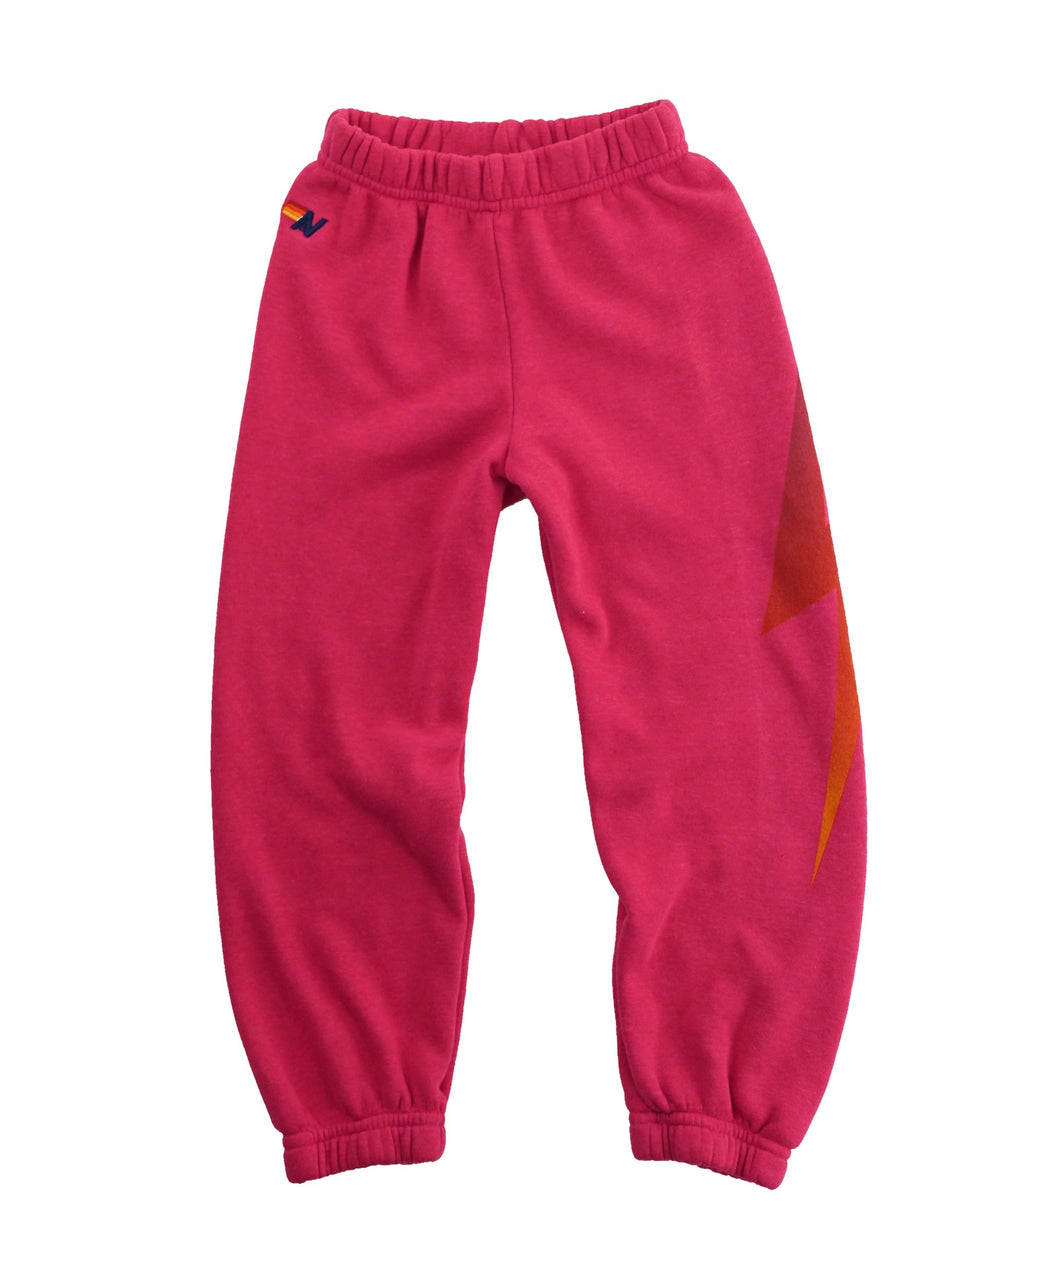 Bolt Fade Sweatpant